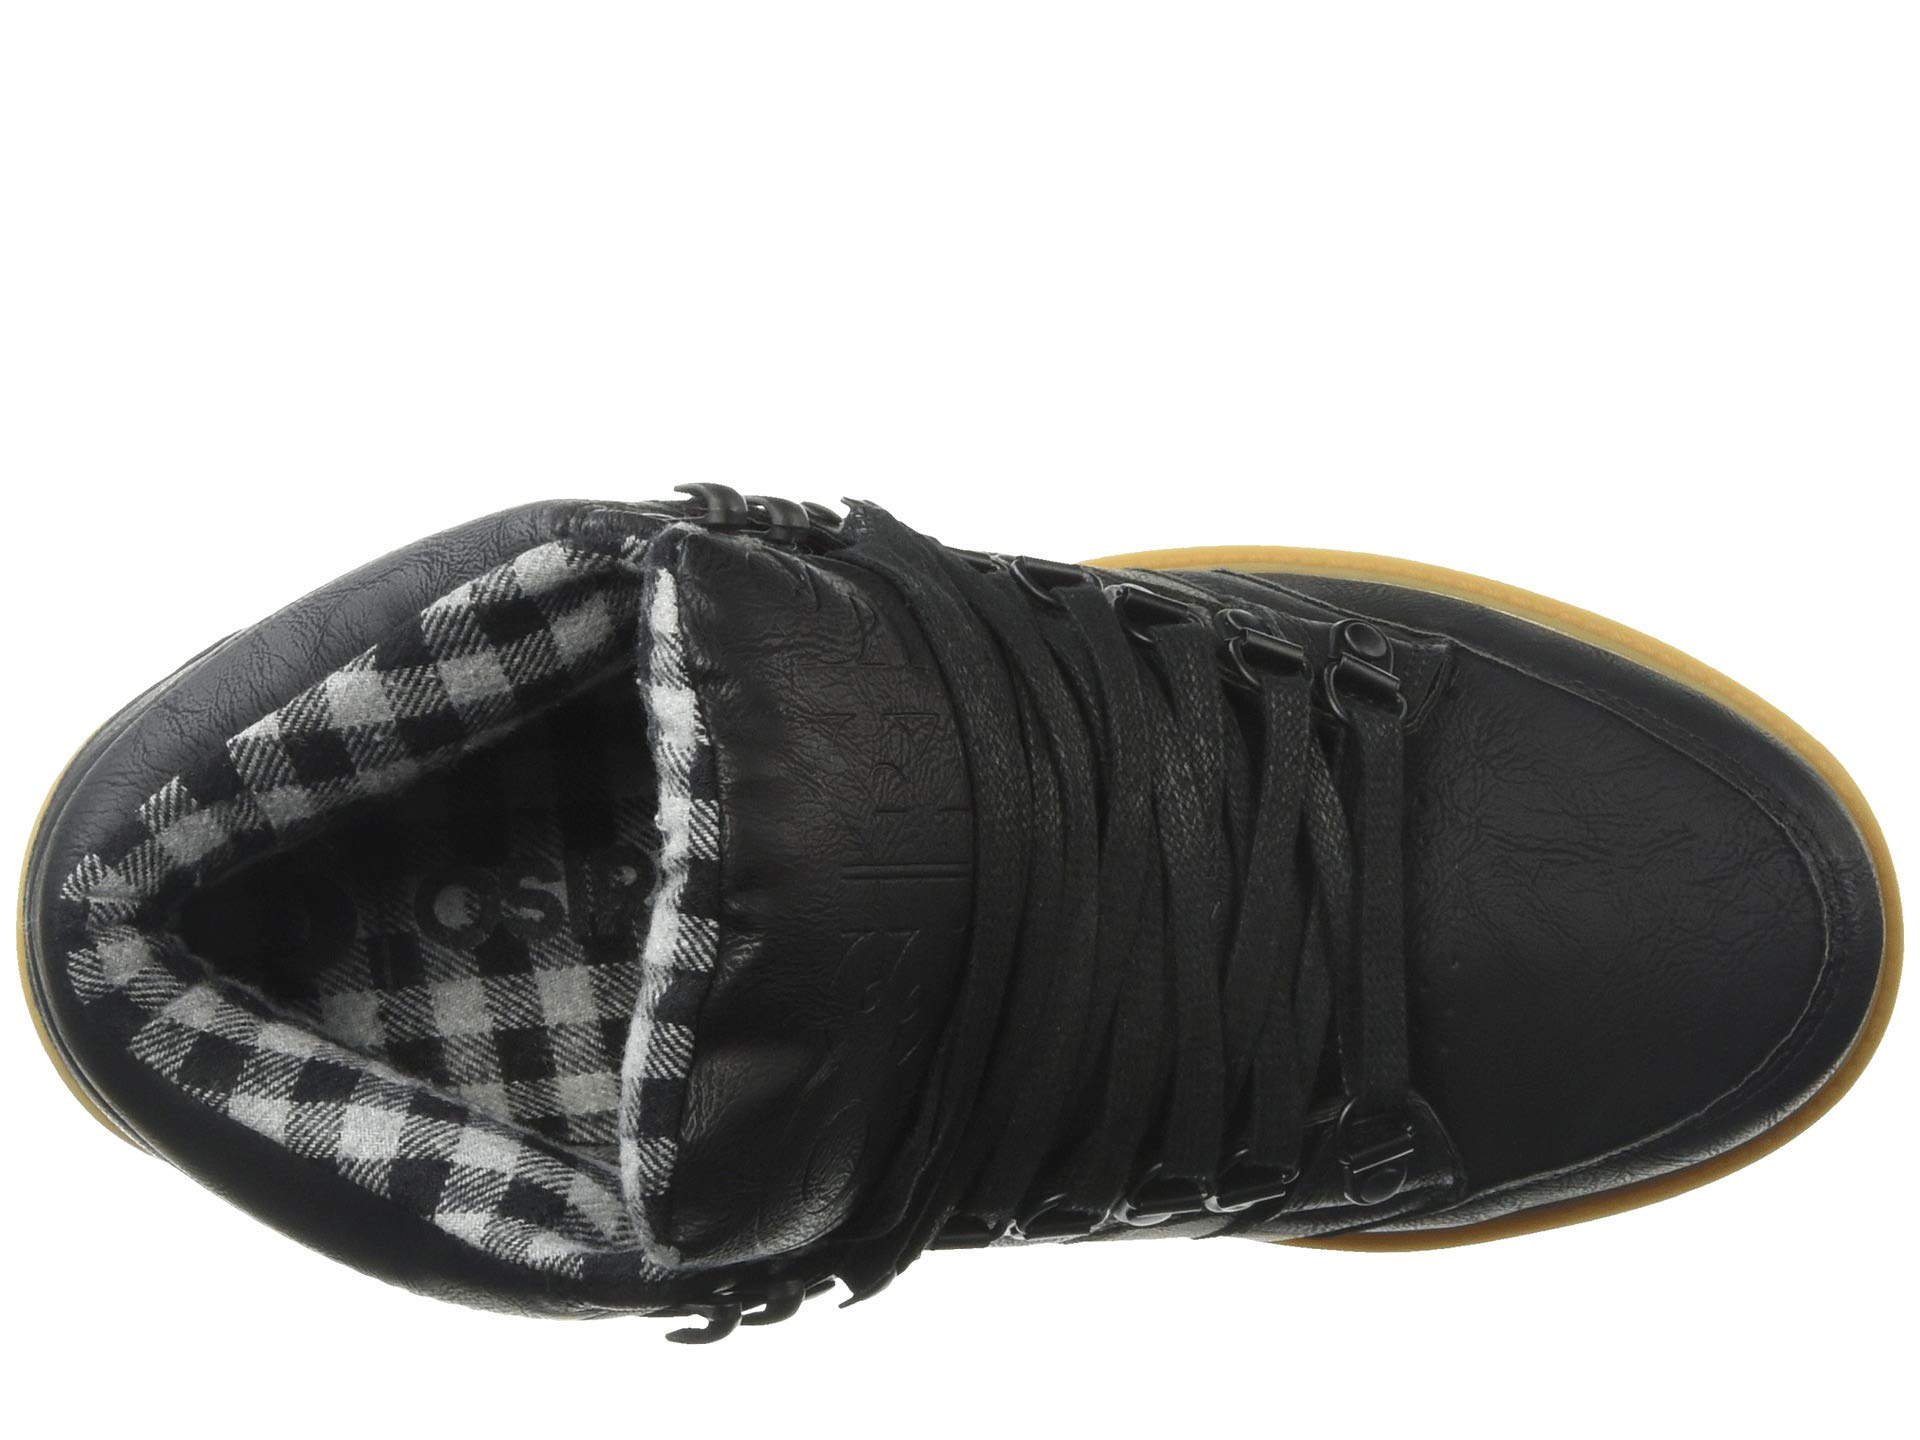 Boot Convoy plaid Osiris Black Convoy Osiris zqtxR6wS